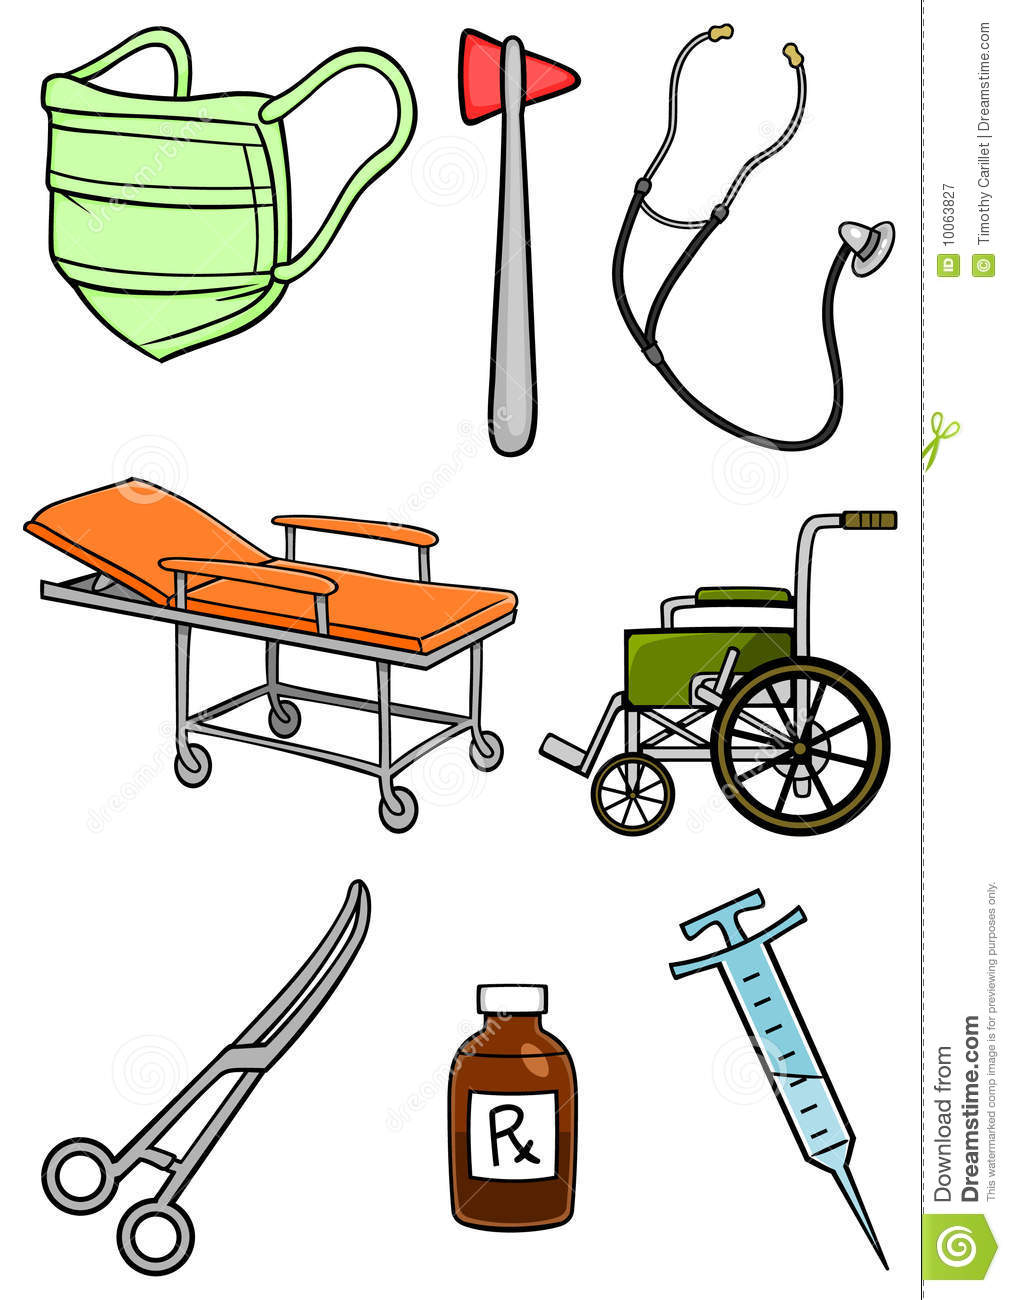 Hospital Equipment Royalty Free Stock Photography - Image: 10063827